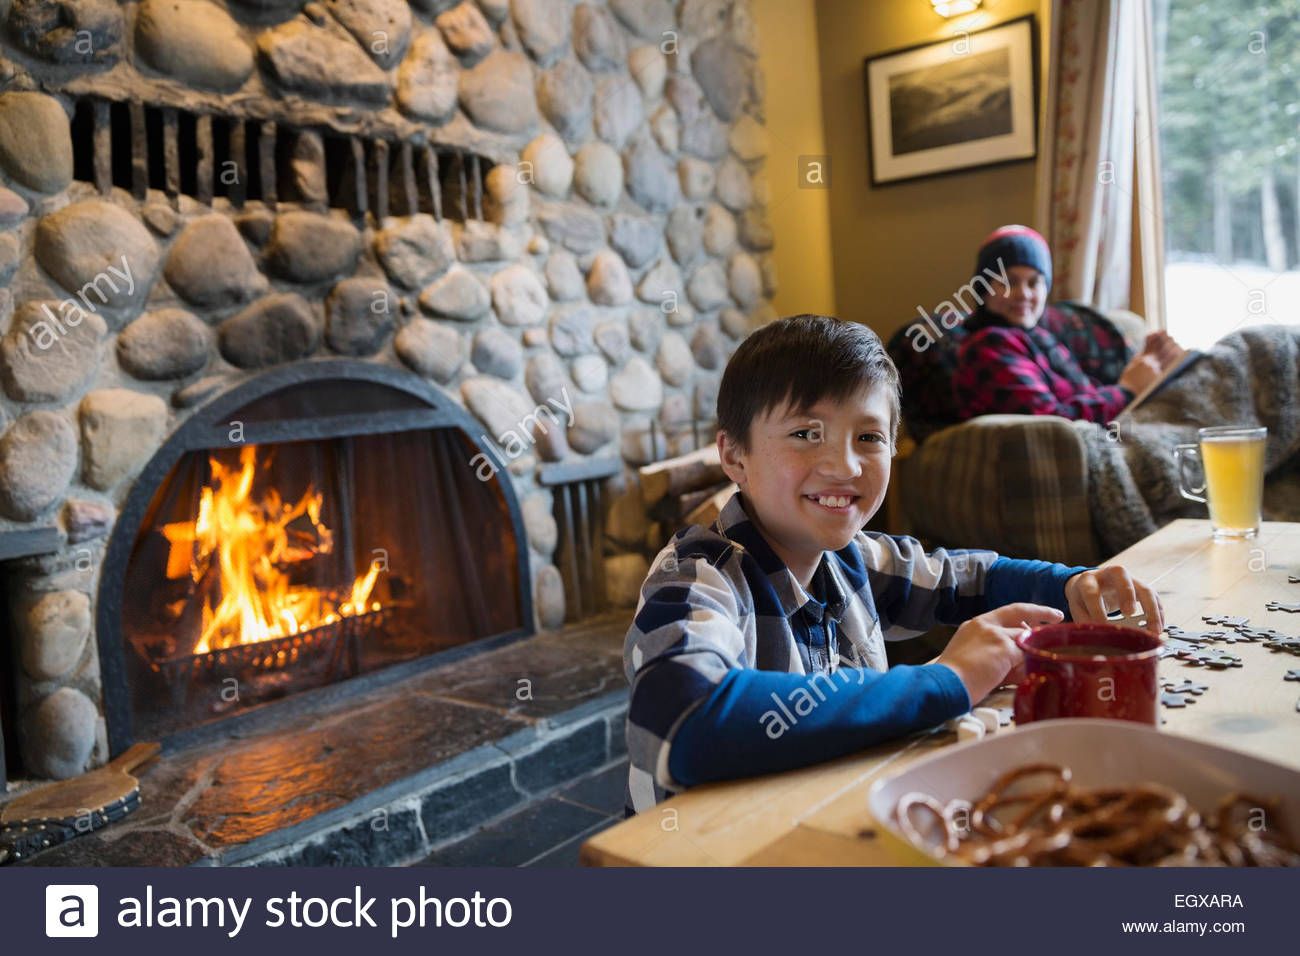 Boy assembling jigsaw puzzle by living room fireplace - Stock Image